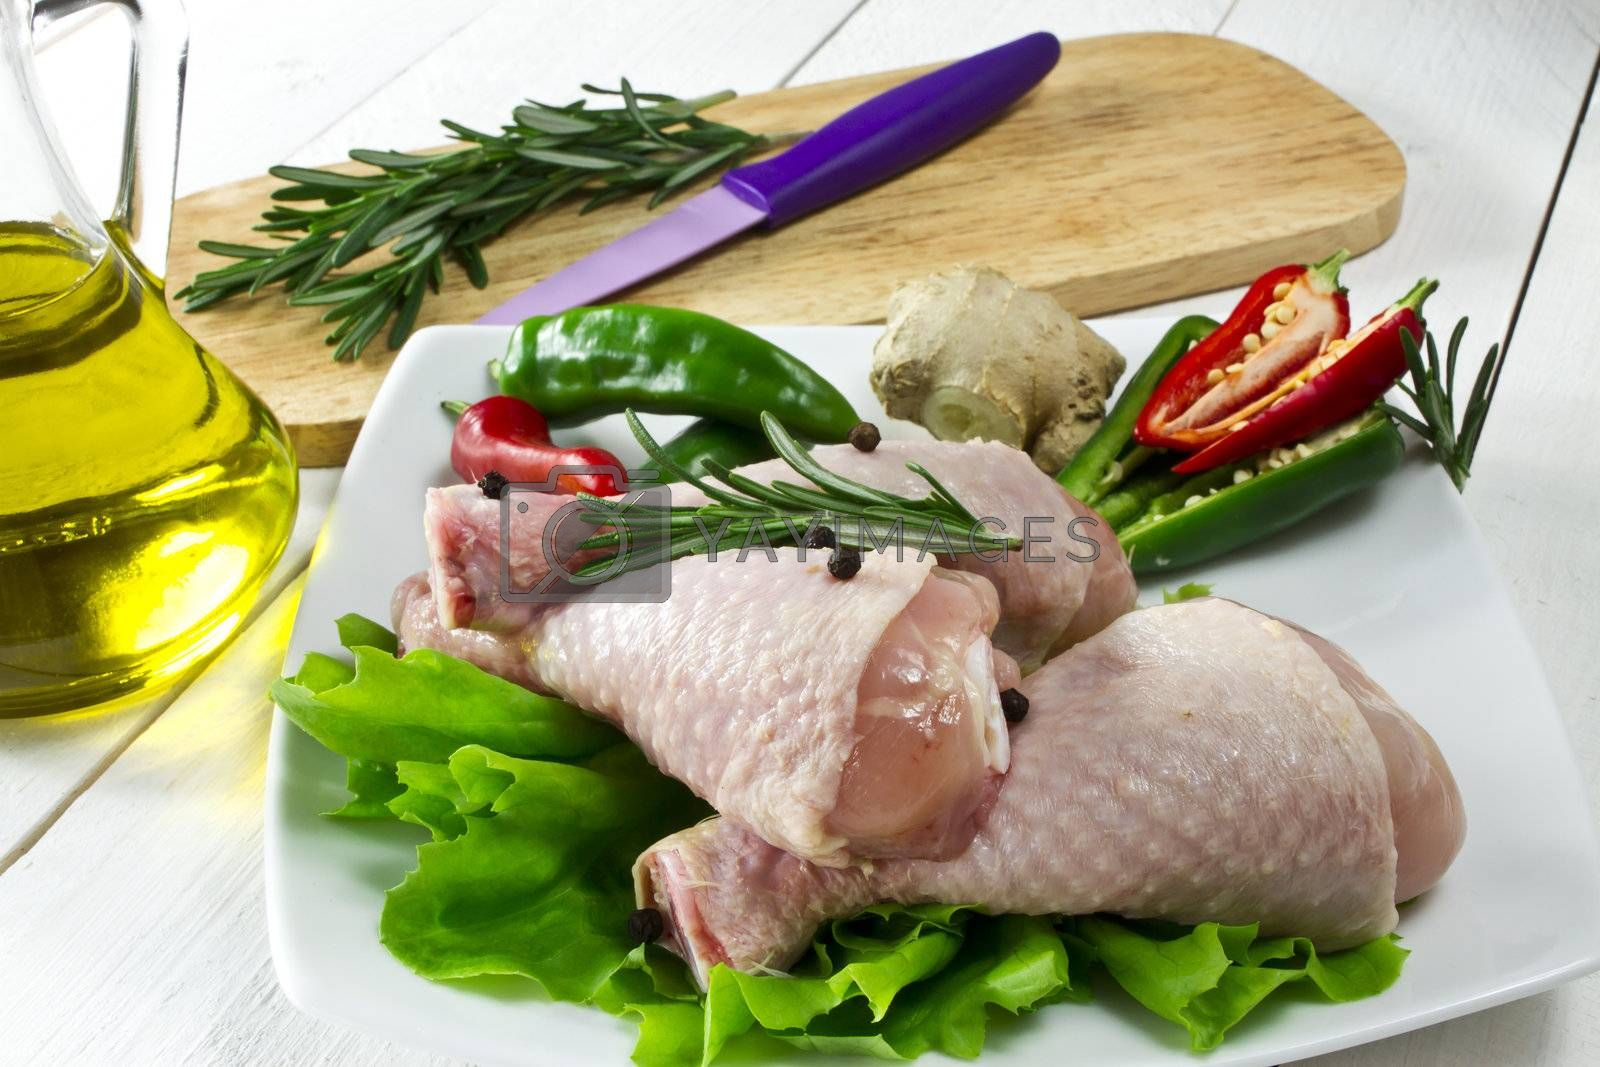 Fresh - raw chicken drumsticks on the plate